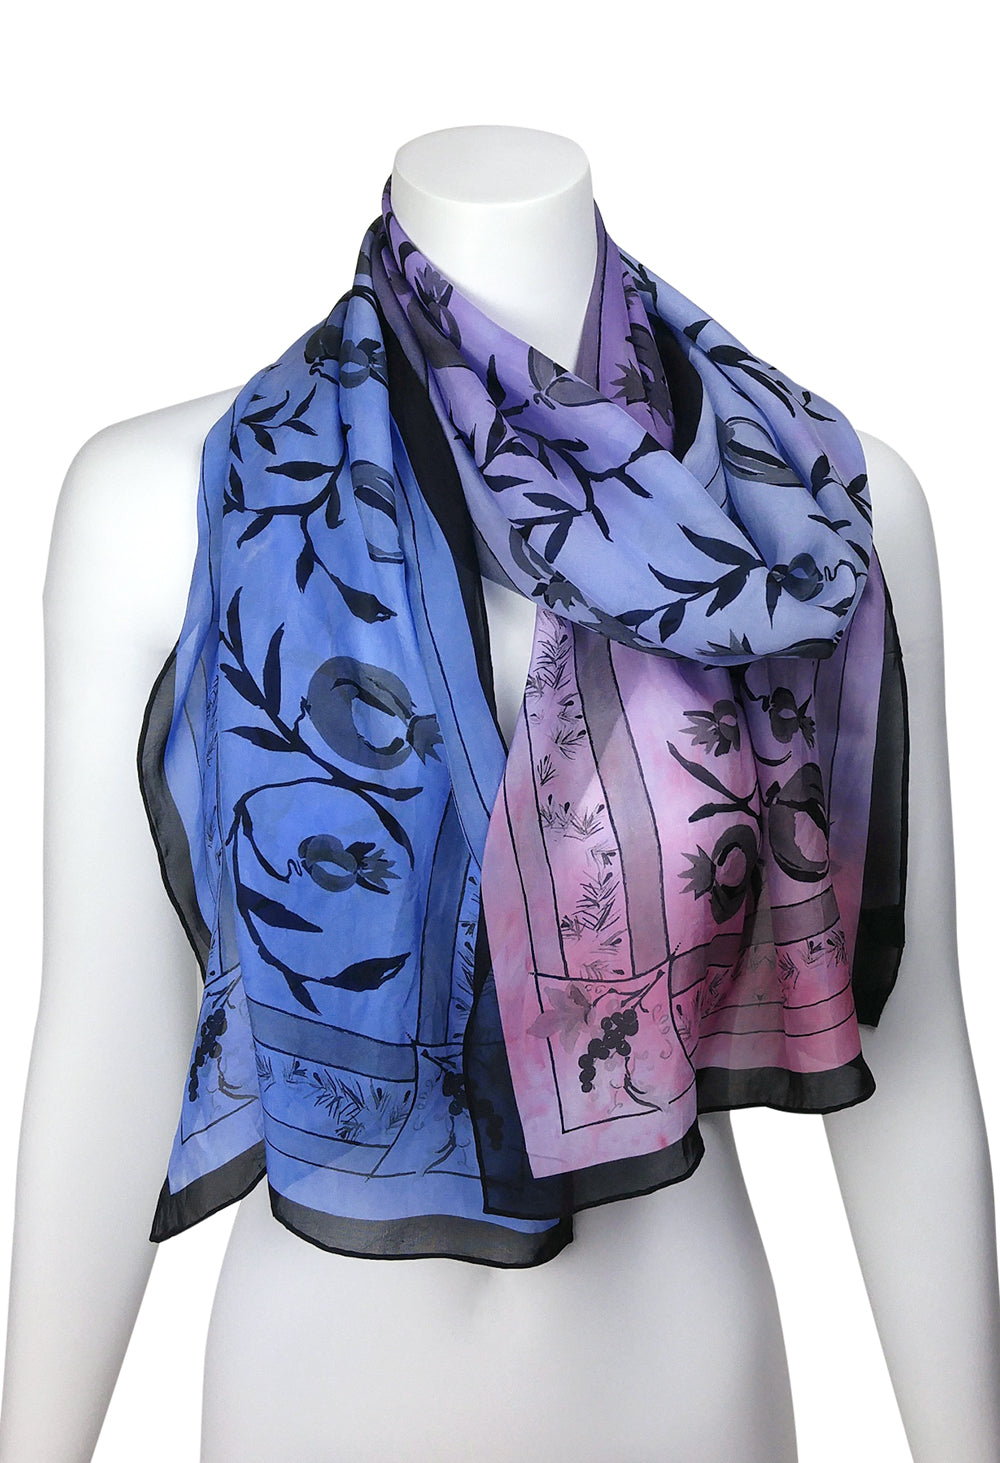 Three Gifts Pomegranate Scarf LONG Chiffon